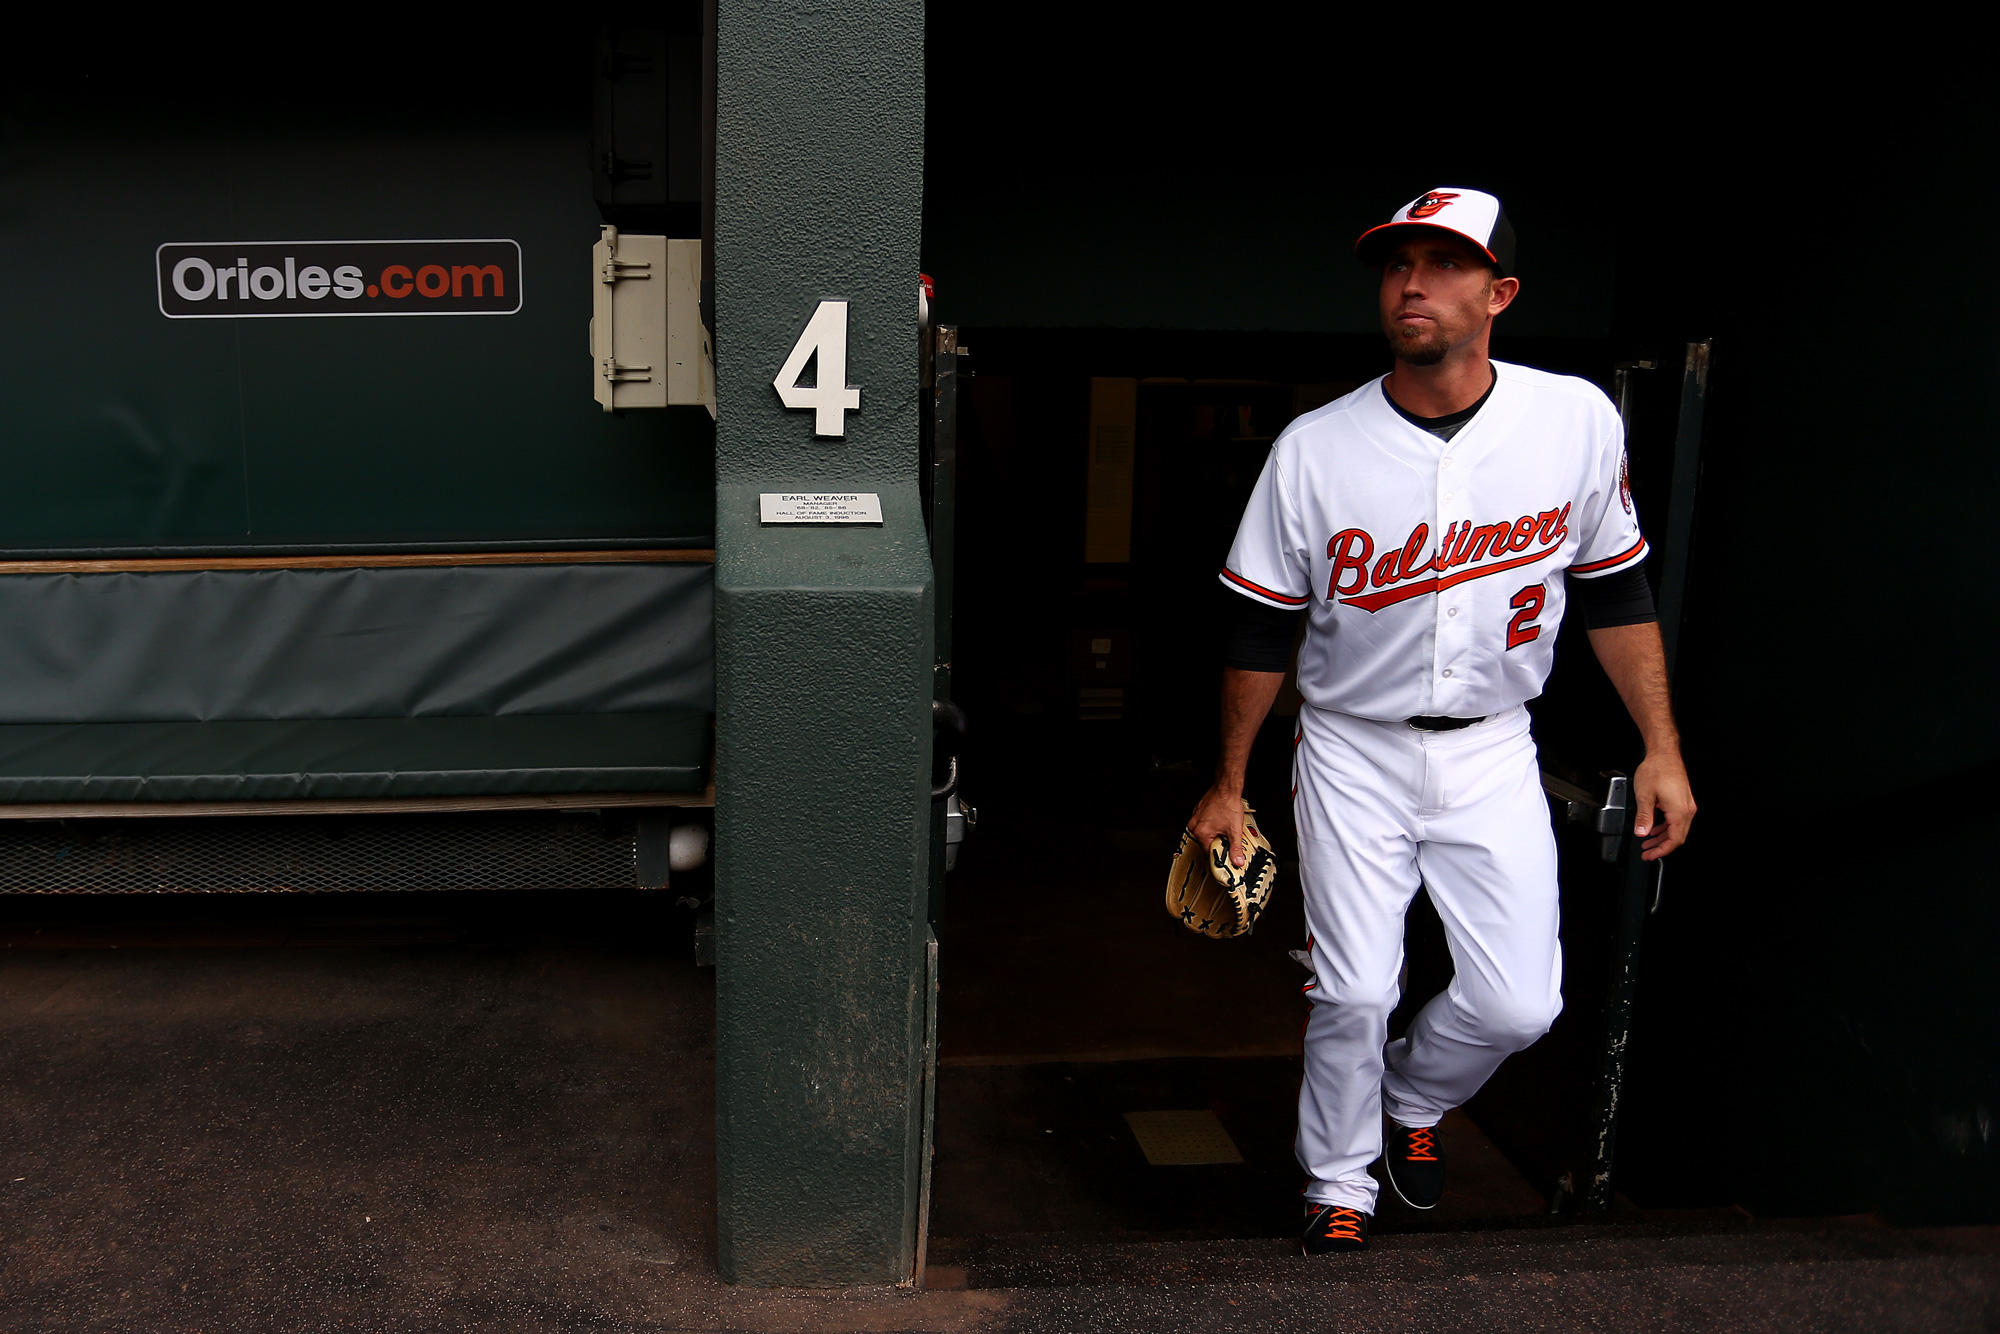 Shortstop J.J Hardy #2 of the Baltimore Orioles exits the dugout before the game against the Toronto Blue Jays at Oriole Park at Camden Yards on May 11, 2015 in Baltimore, Maryland.